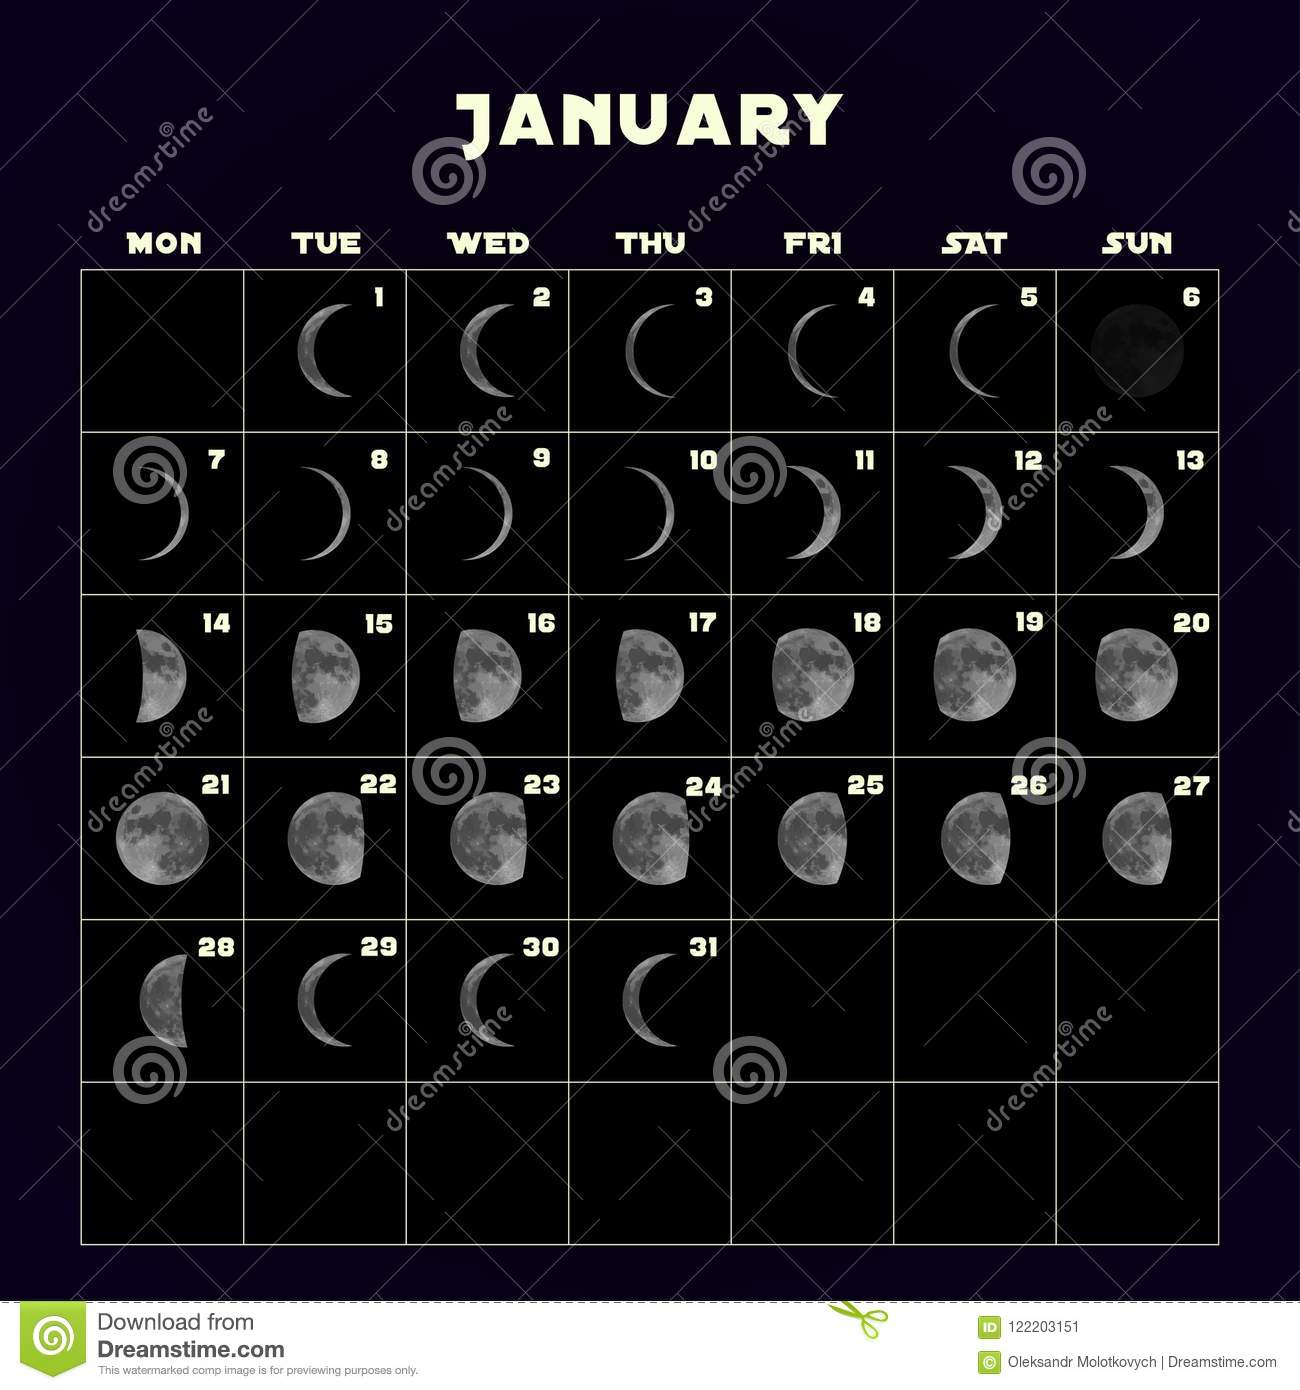 Moon Phases Calendar January 2019 Moon Phases Calendar For 2019 With Realistic Moon. January. Vector